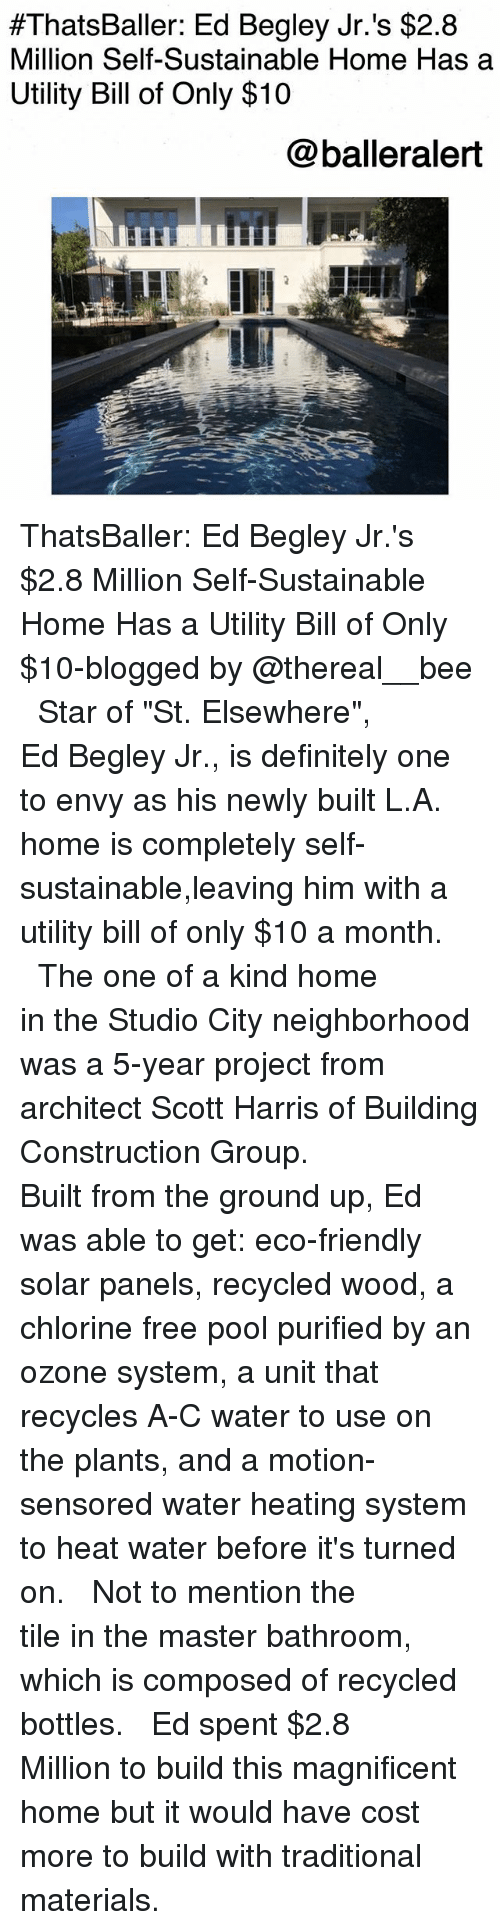 """eco friendly:  #ThatsBaller: Ed Begley Jr. 's $2.8  Million Self-Sustainable Home Has a  Utility Bill of Only $10  @balleralert ThatsBaller: Ed Begley Jr.'s $2.8 Million Self-Sustainable Home Has a Utility Bill of Only $10-blogged by @thereal__bee ⠀⠀⠀⠀⠀⠀⠀⠀⠀ ⠀⠀ Star of """"St. Elsewhere"""", Ed Begley Jr., is definitely one to envy as his newly built L.A. home is completely self-sustainable,leaving him with a utility bill of only $10 a month. ⠀⠀⠀⠀⠀⠀⠀⠀⠀ ⠀⠀ The one of a kind home in the Studio City neighborhood was a 5-year project from architect Scott Harris of Building Construction Group. ⠀⠀⠀⠀⠀⠀⠀⠀⠀ ⠀⠀ Built from the ground up, Ed was able to get: eco-friendly solar panels, recycled wood, a chlorine free pool purified by an ozone system, a unit that recycles A-C water to use on the plants, and a motion-sensored water heating system to heat water before it's turned on. ⠀⠀⠀⠀⠀⠀⠀⠀⠀ ⠀⠀ Not to mention the tile in the master bathroom, which is composed of recycled bottles. ⠀⠀⠀⠀⠀⠀⠀⠀⠀ ⠀⠀ Ed spent $2.8 Million to build this magnificent home but it would have cost more to build with traditional materials."""